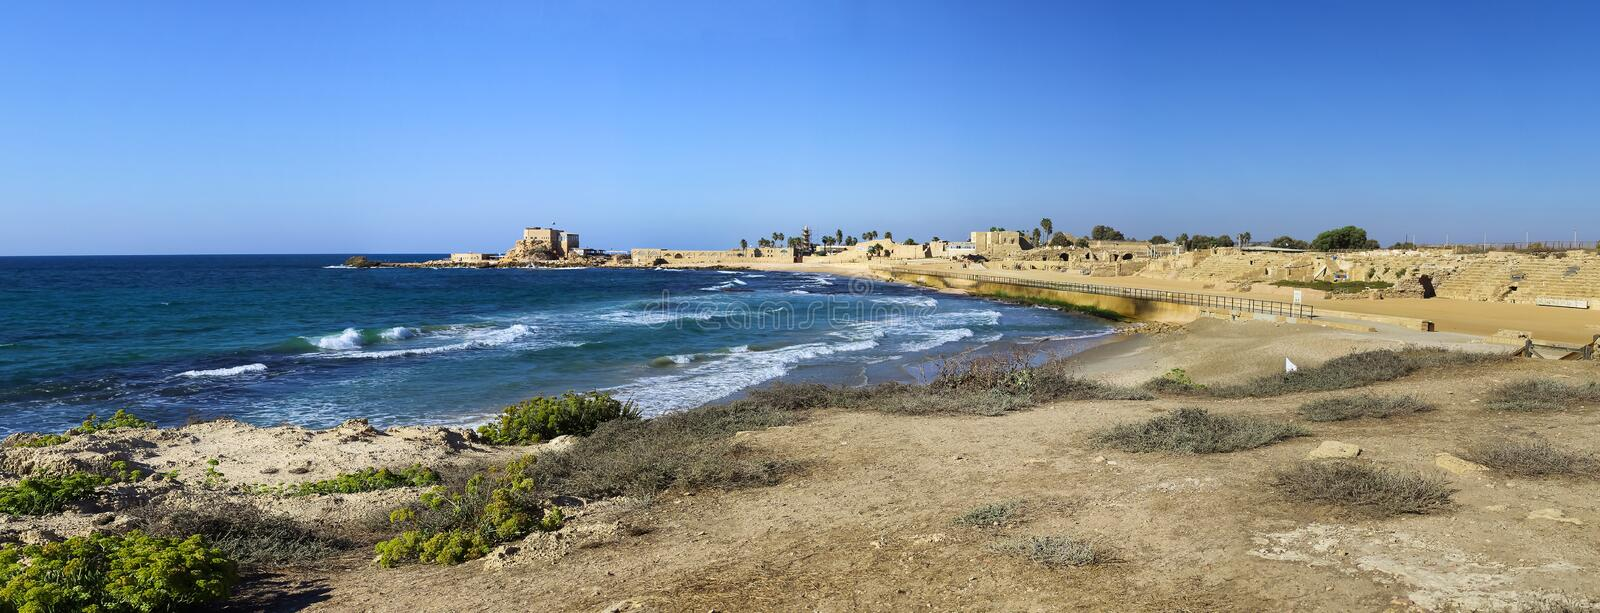 National park Caesarea on the coast of Mediterranean sea, Israel. Ancient Roman amphitheater. Panorama in high size royalty free stock images